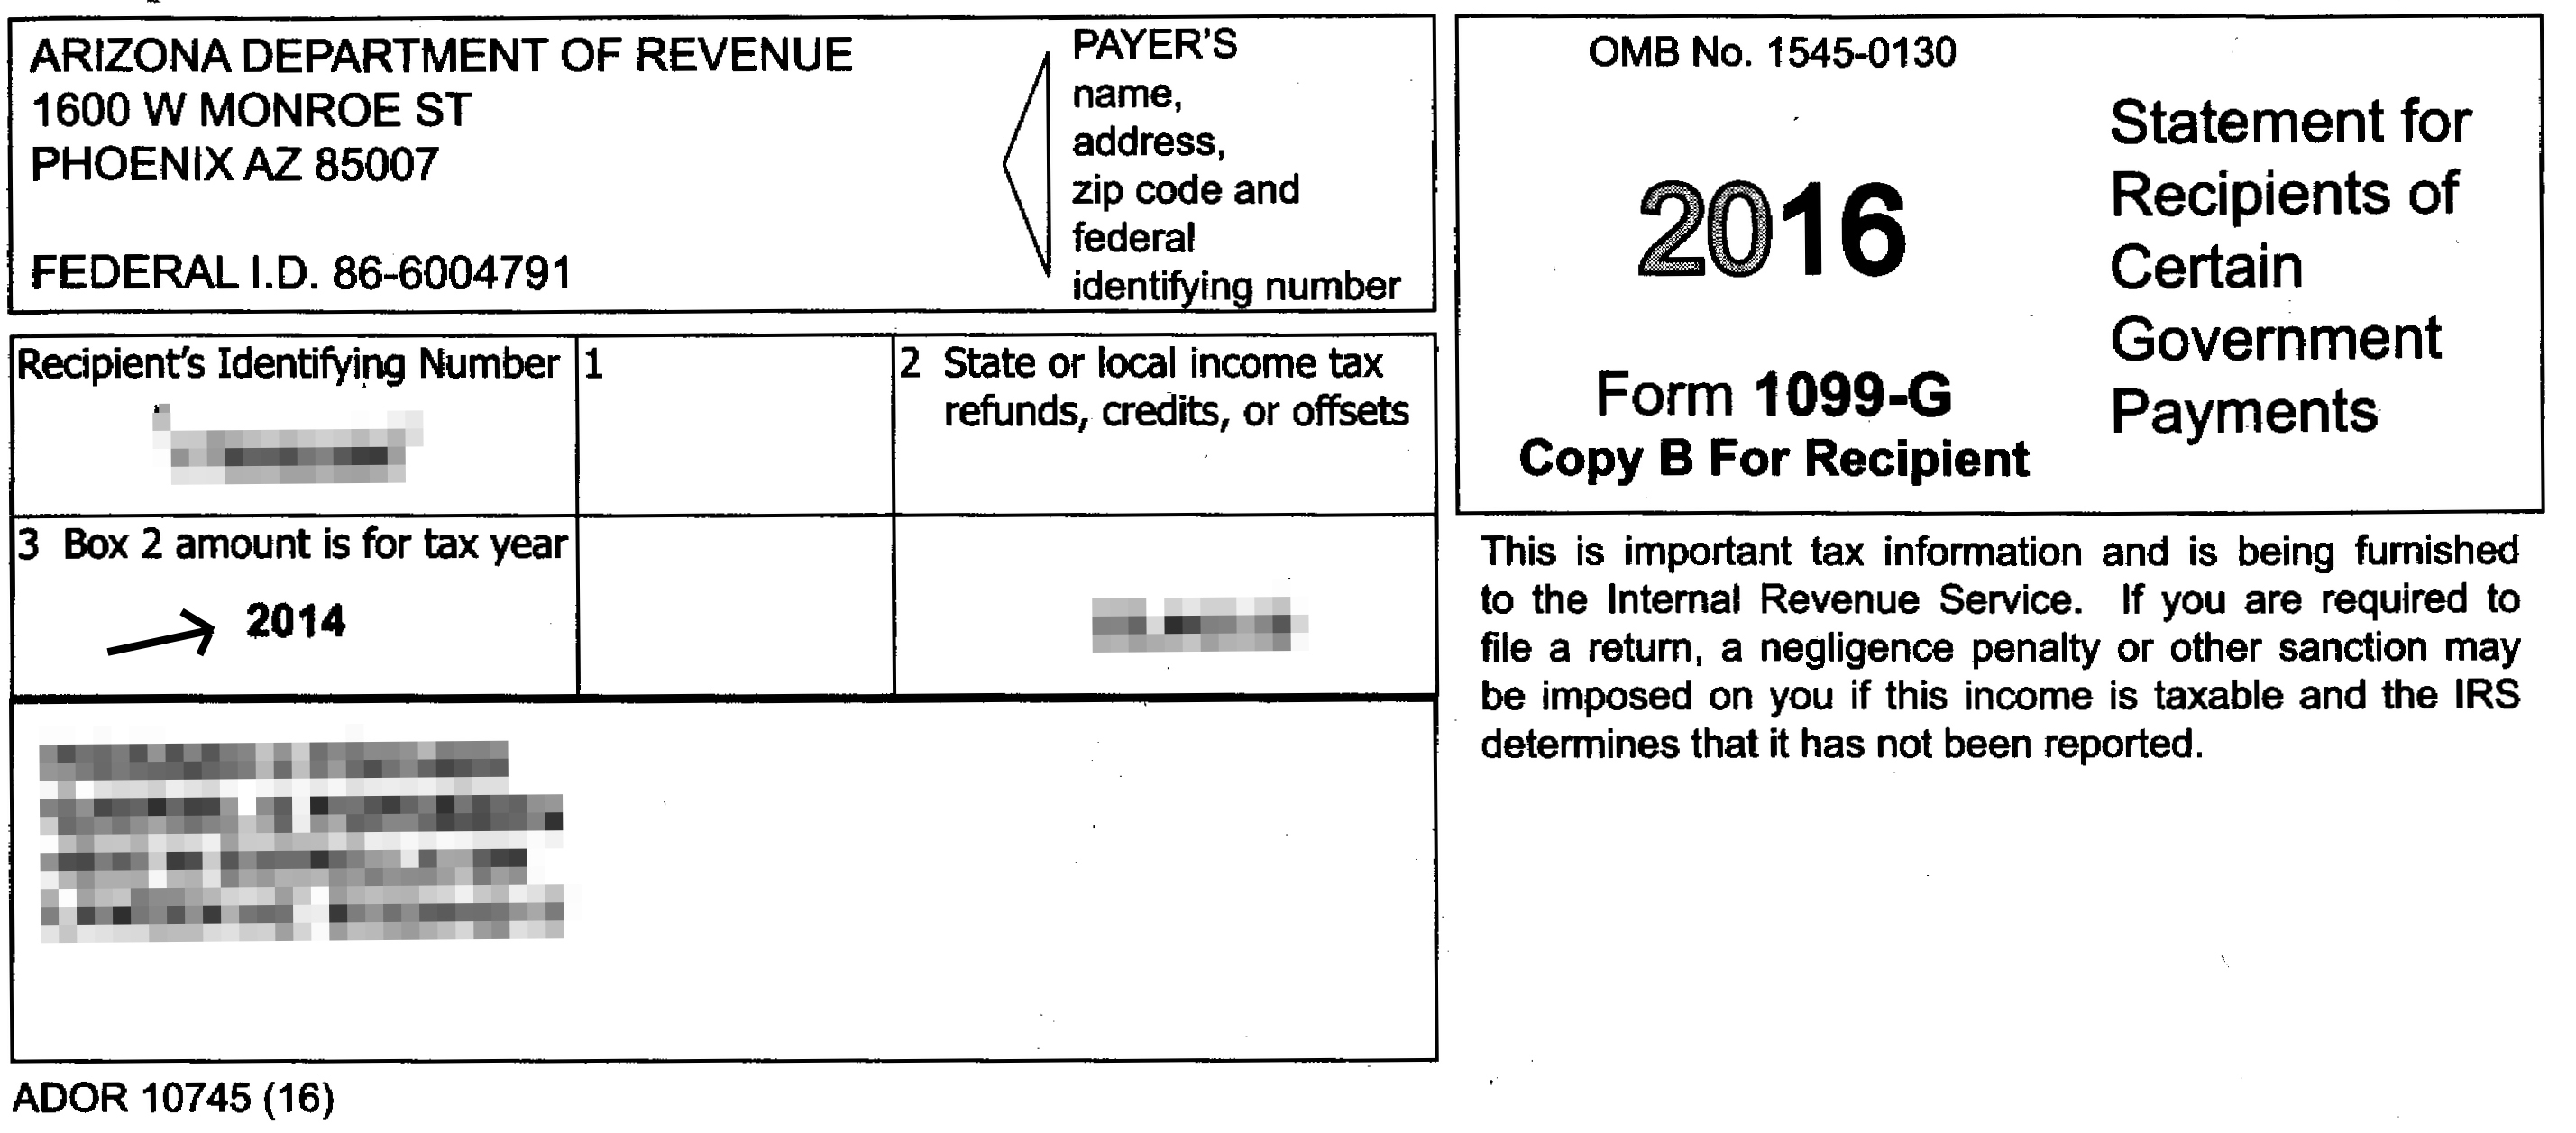 State Income Tax Refund Form G State Income Tax Refund